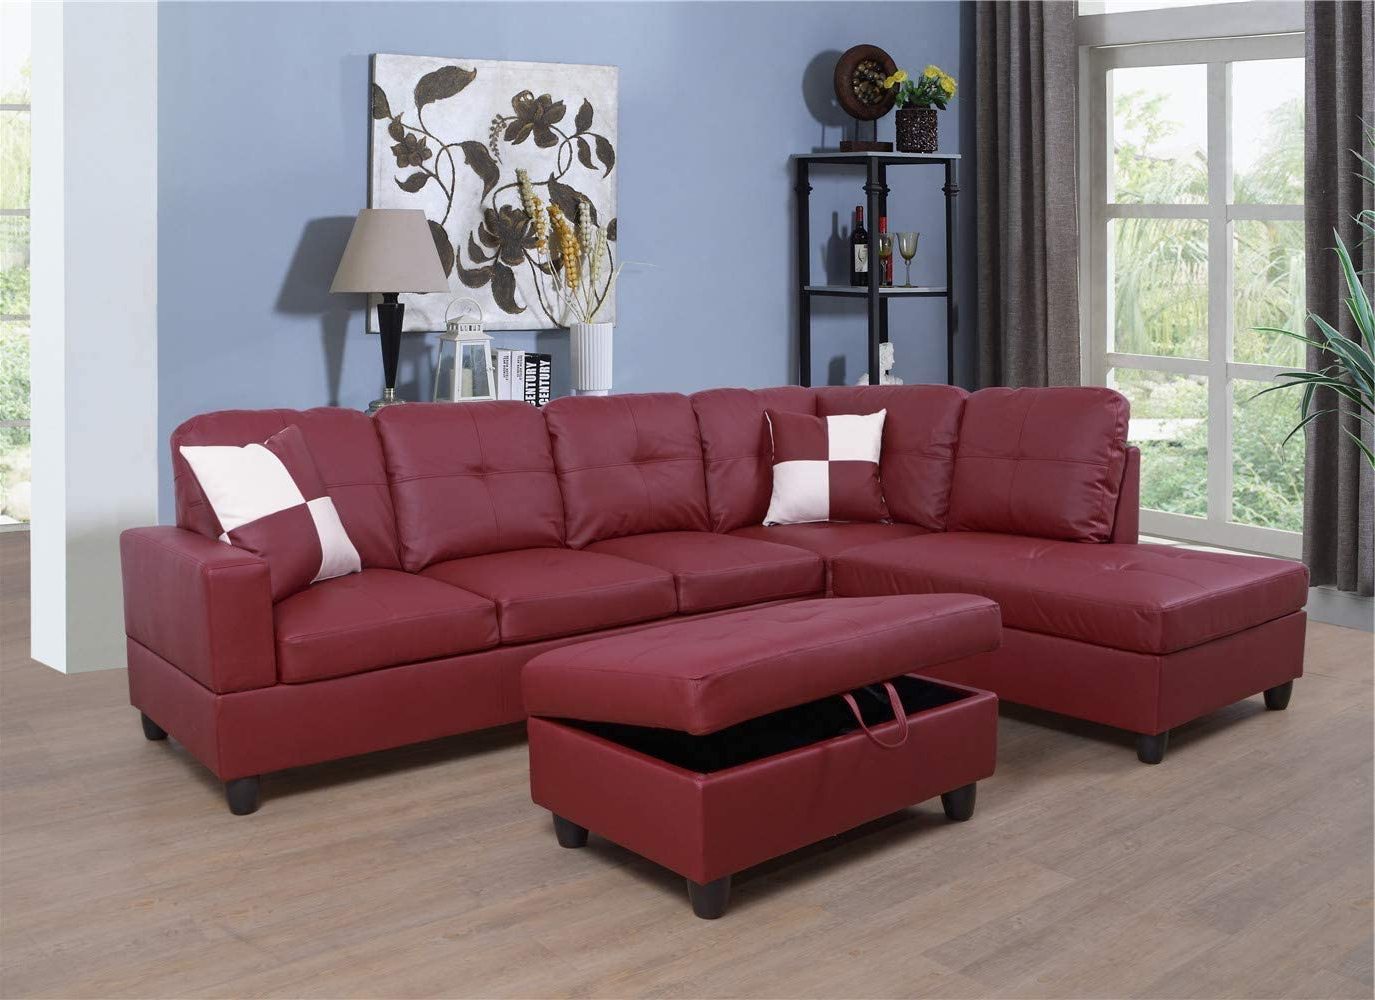 2018 3Pc Faux Leather Sectional Sofas Brown In Ponliving Faux Leather 3 Piece Sectional Sofa Couch Set, L (View 4 of 25)